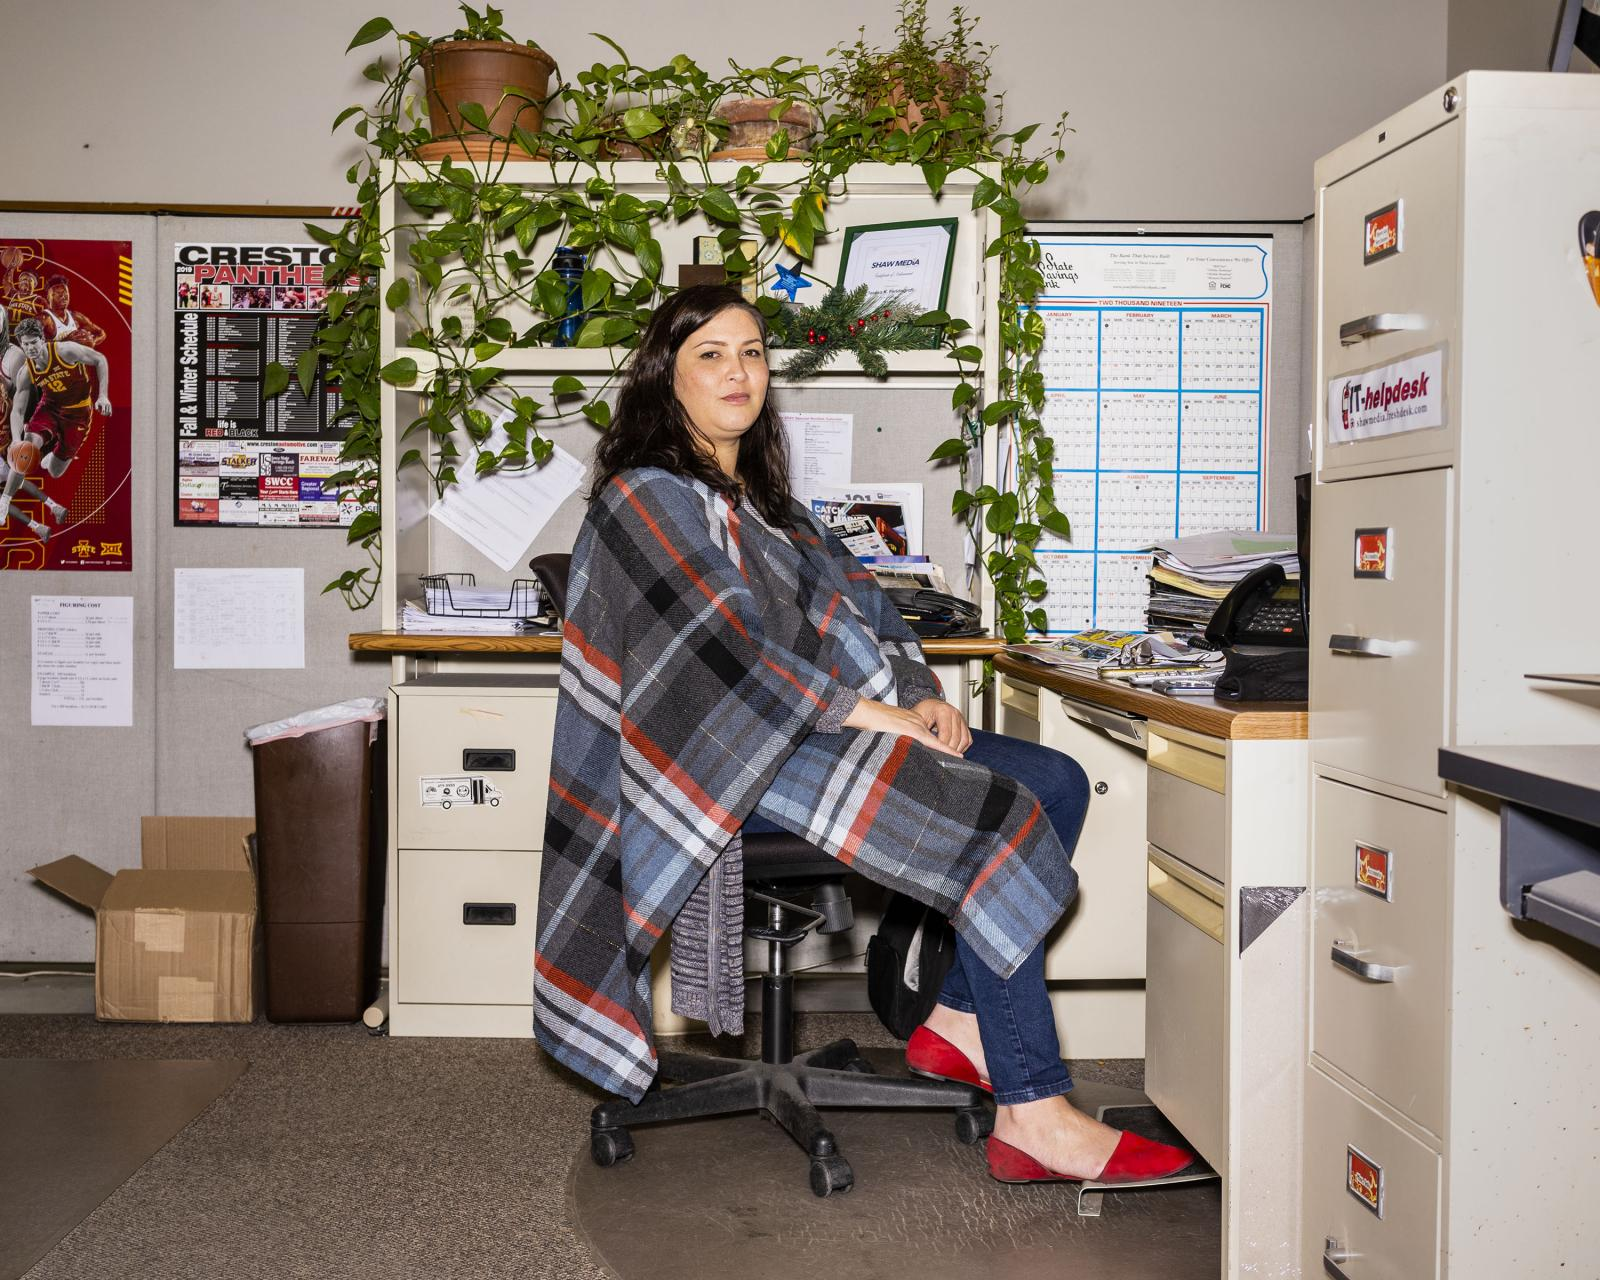 Managing Editor Sarah Scull sits in the office of the Creston News Advertiser in Creston, Iowa on Friday, December 13, 2019. KC McGinnis for La Croix L'Hebdo